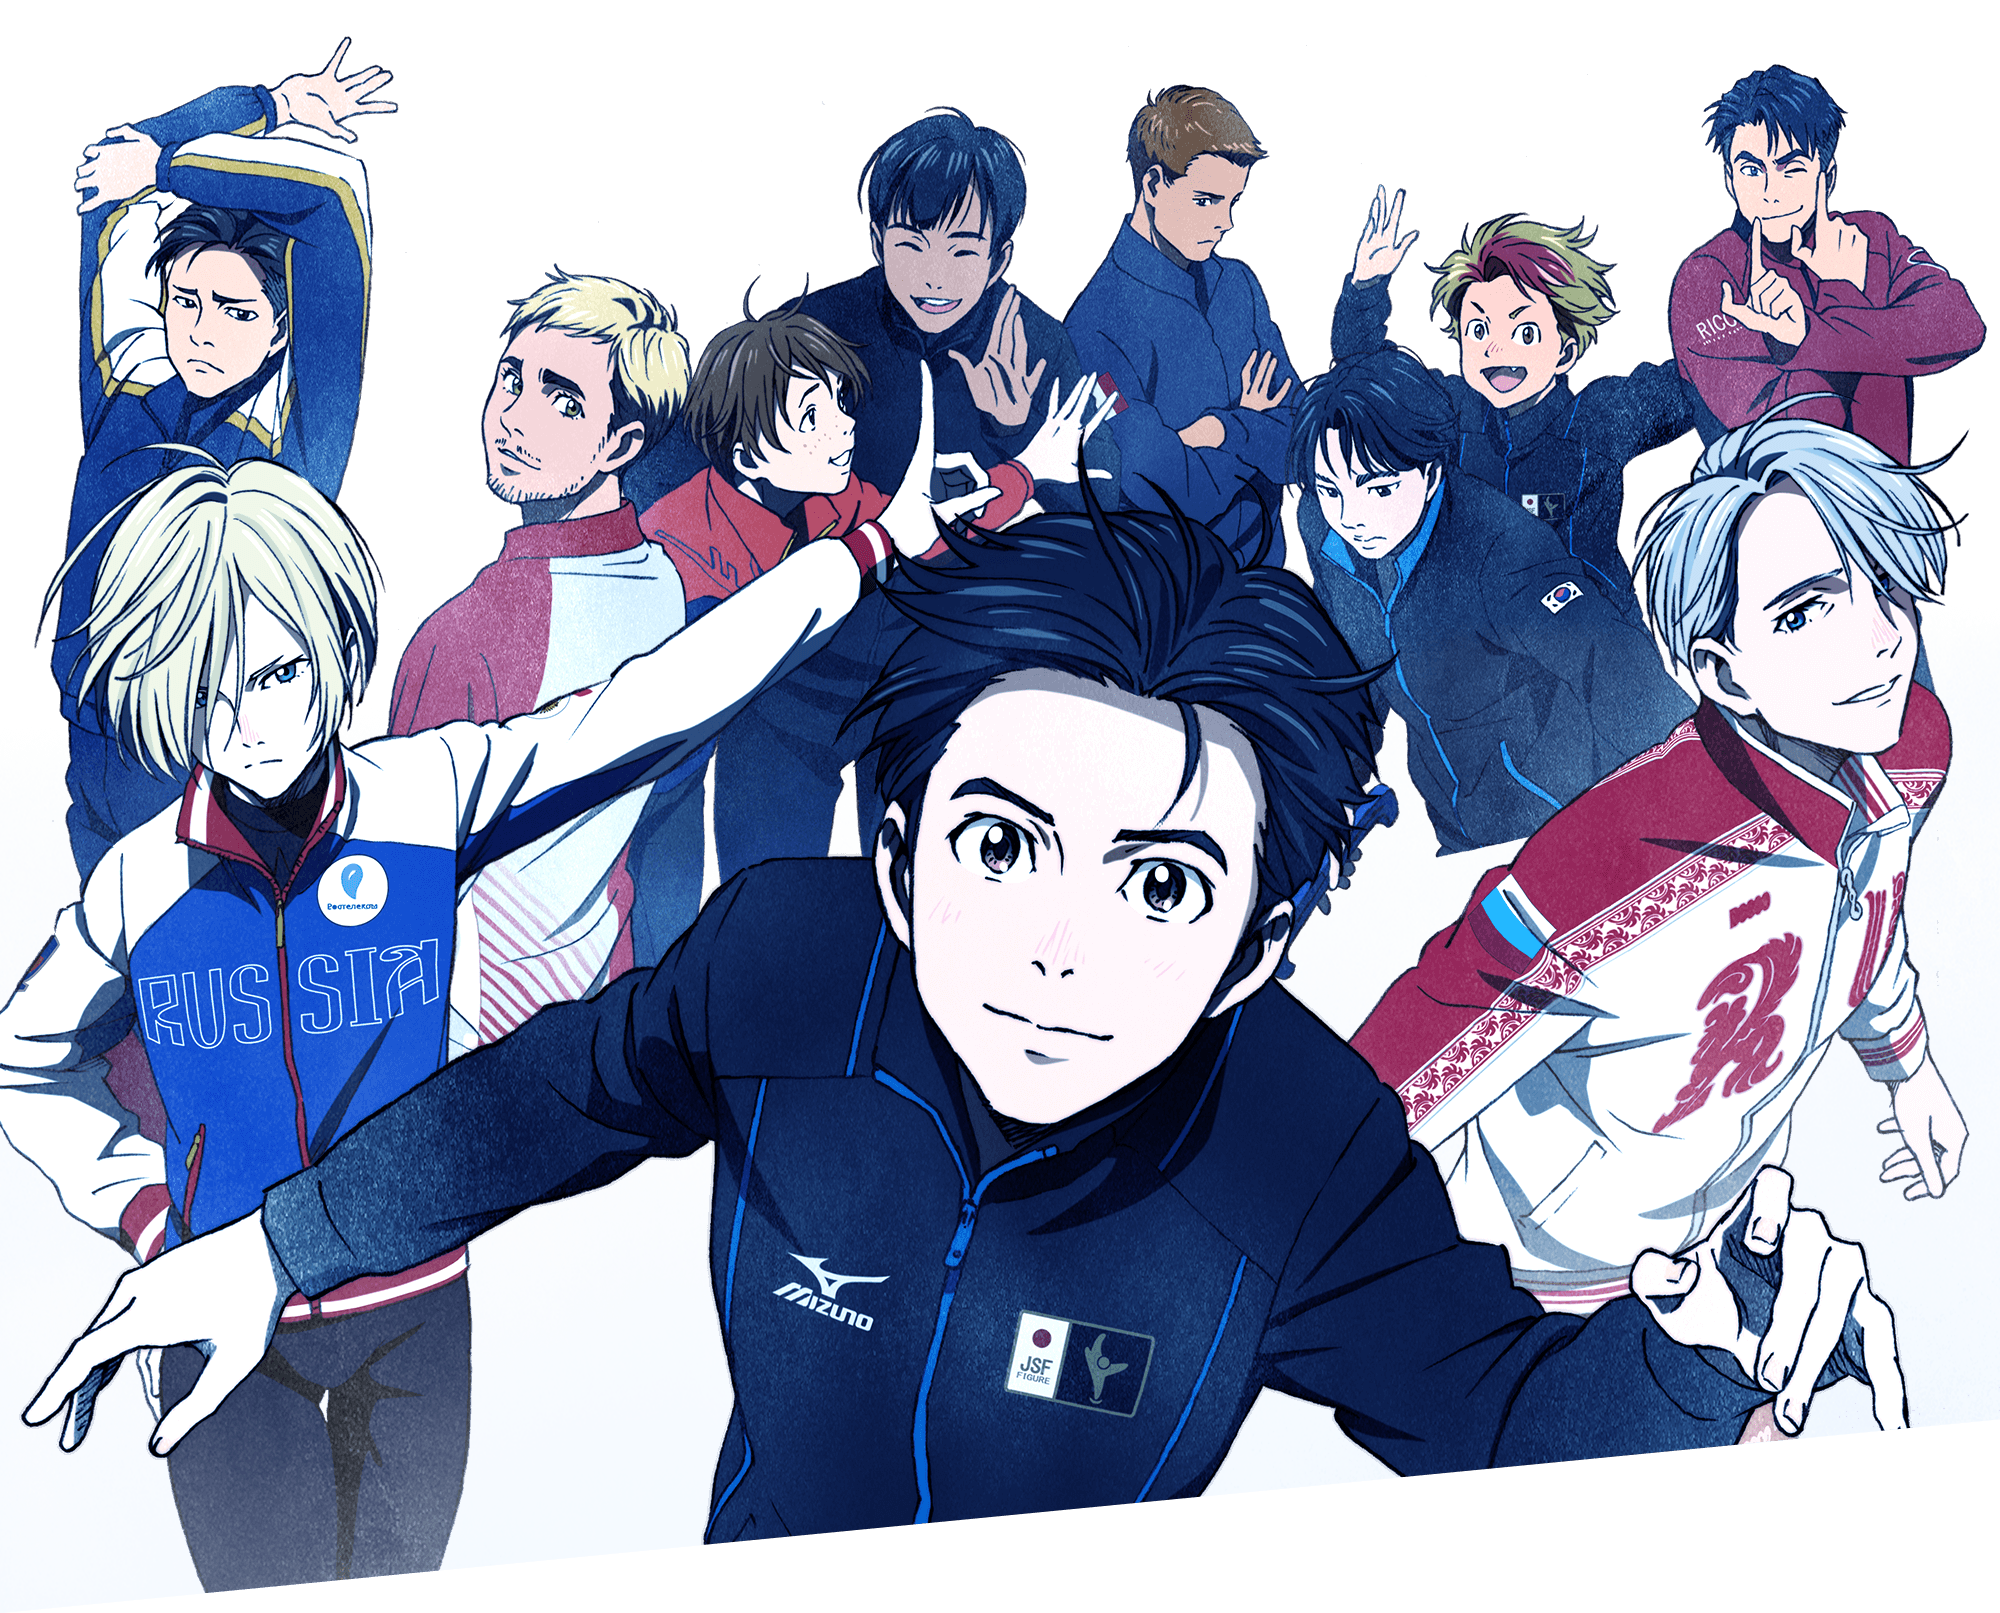 Anunciada película de Yuri!!! on Ice